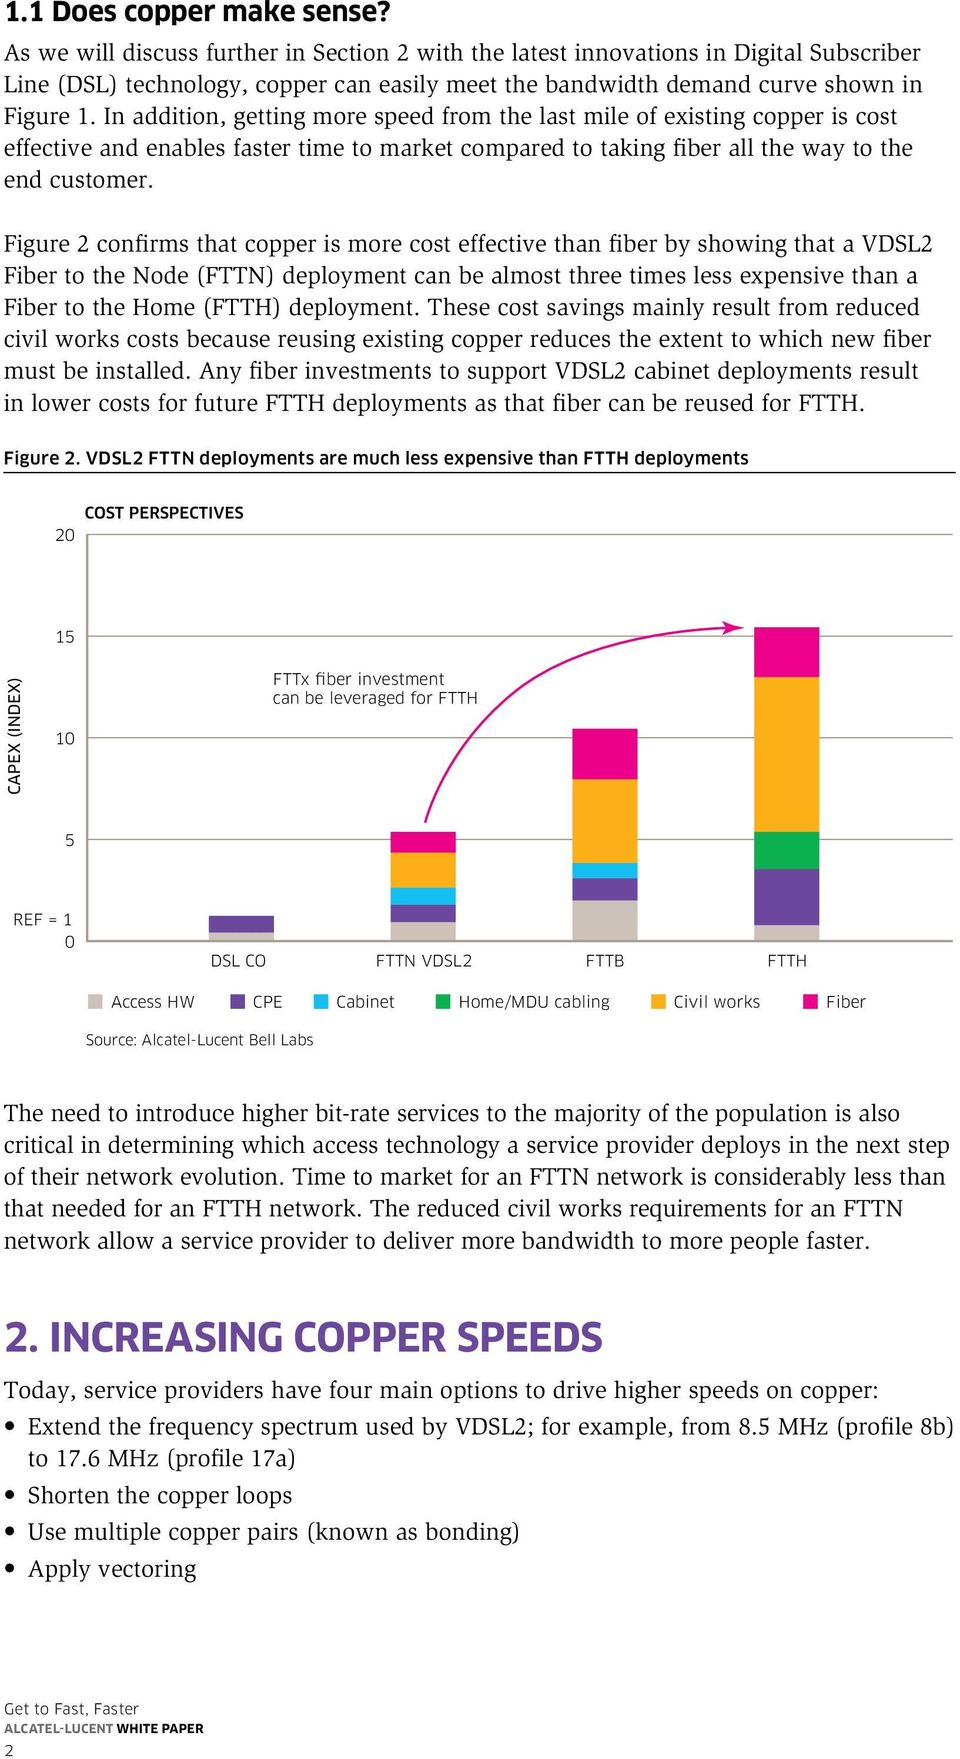 In addition, getting more speed from the last mile of existing copper is cost effective and enables faster time to market compared to taking fiber all the way to the end customer.